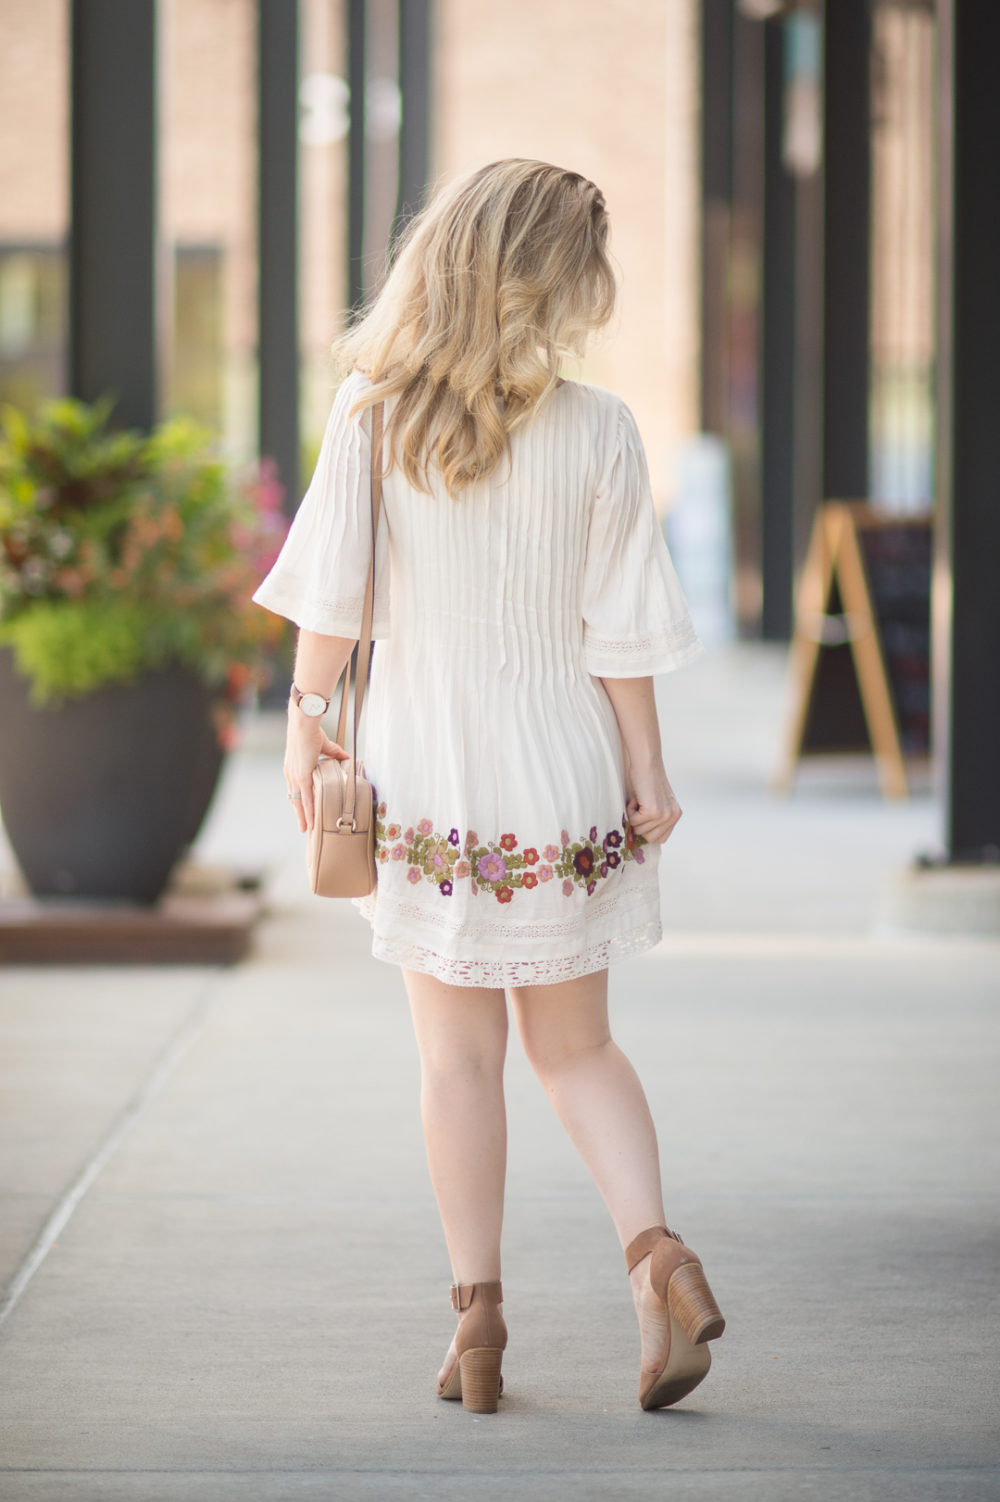 Petite Fashion and Style Blog | Tularosa Audrey Pintuck Dress | Gucci Soho Disco Bag | Steve Madden Gerard Heels - First Year Blogiversary by popular Michigan petite fashion blogger The Blue Hydrangeas